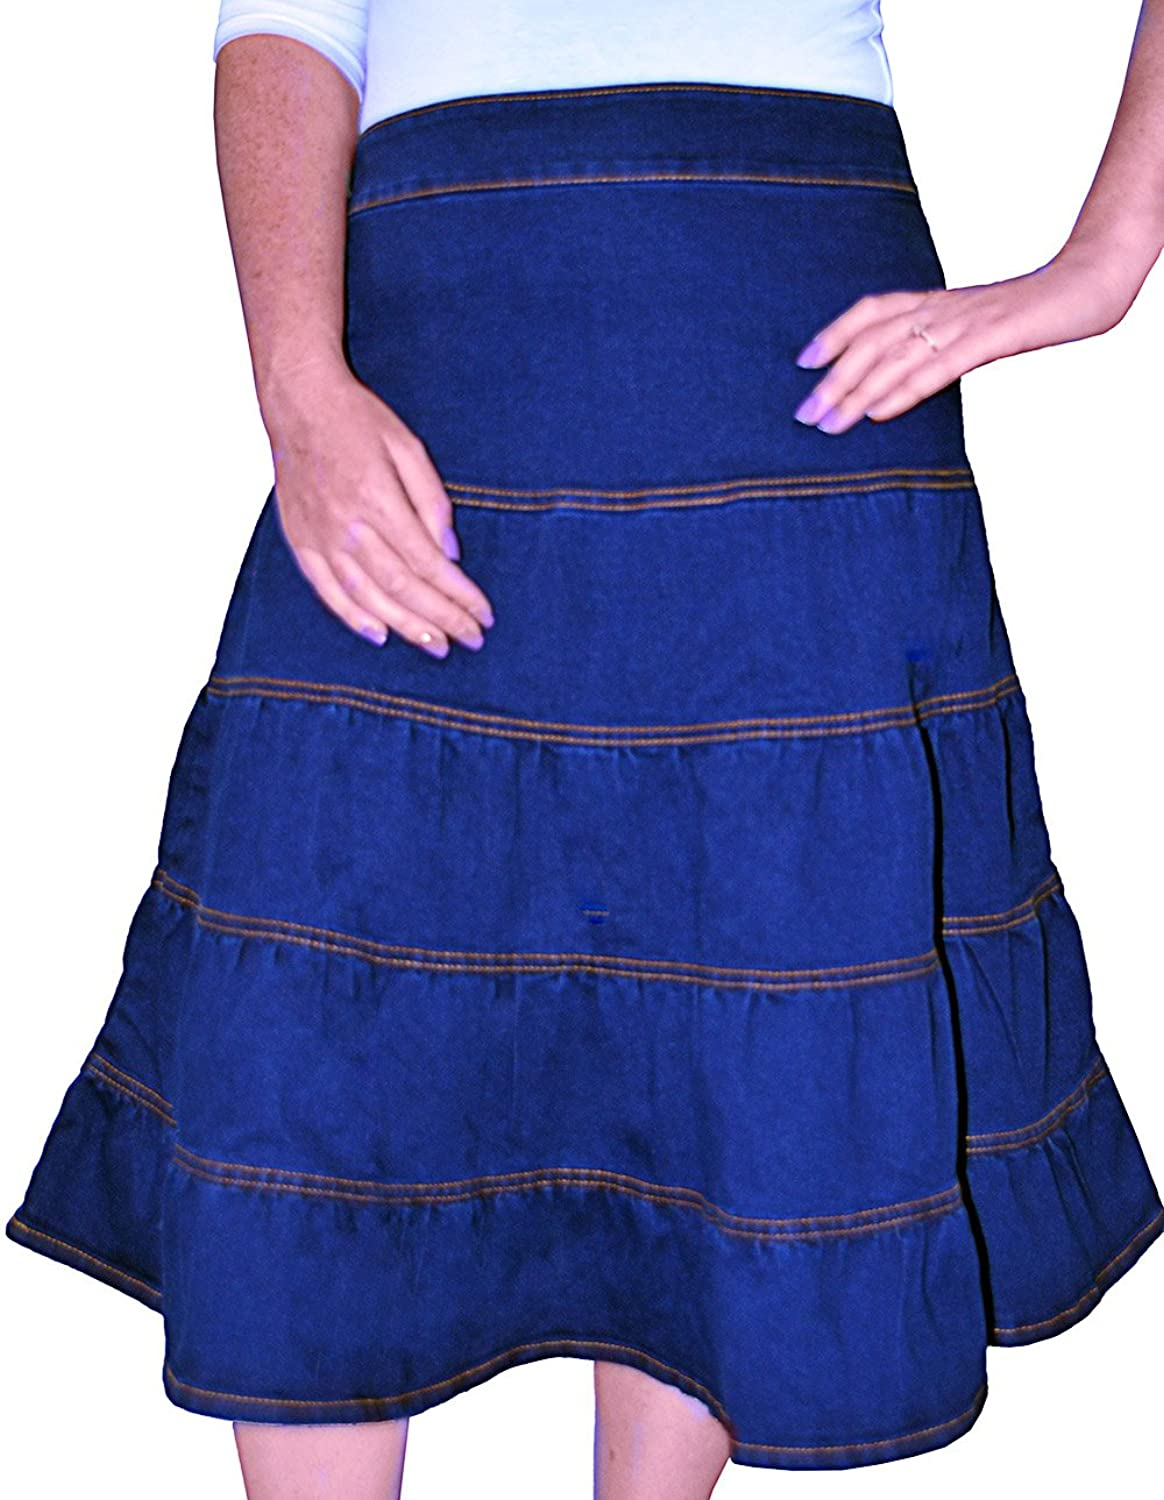 7c06a5c907 Classic tiered jeans skirt. 75% Cotton/20% Poly/5% Spandex Elastic  waistband with rear zipper closure. Below the knee A-line cut with ample  room for ...